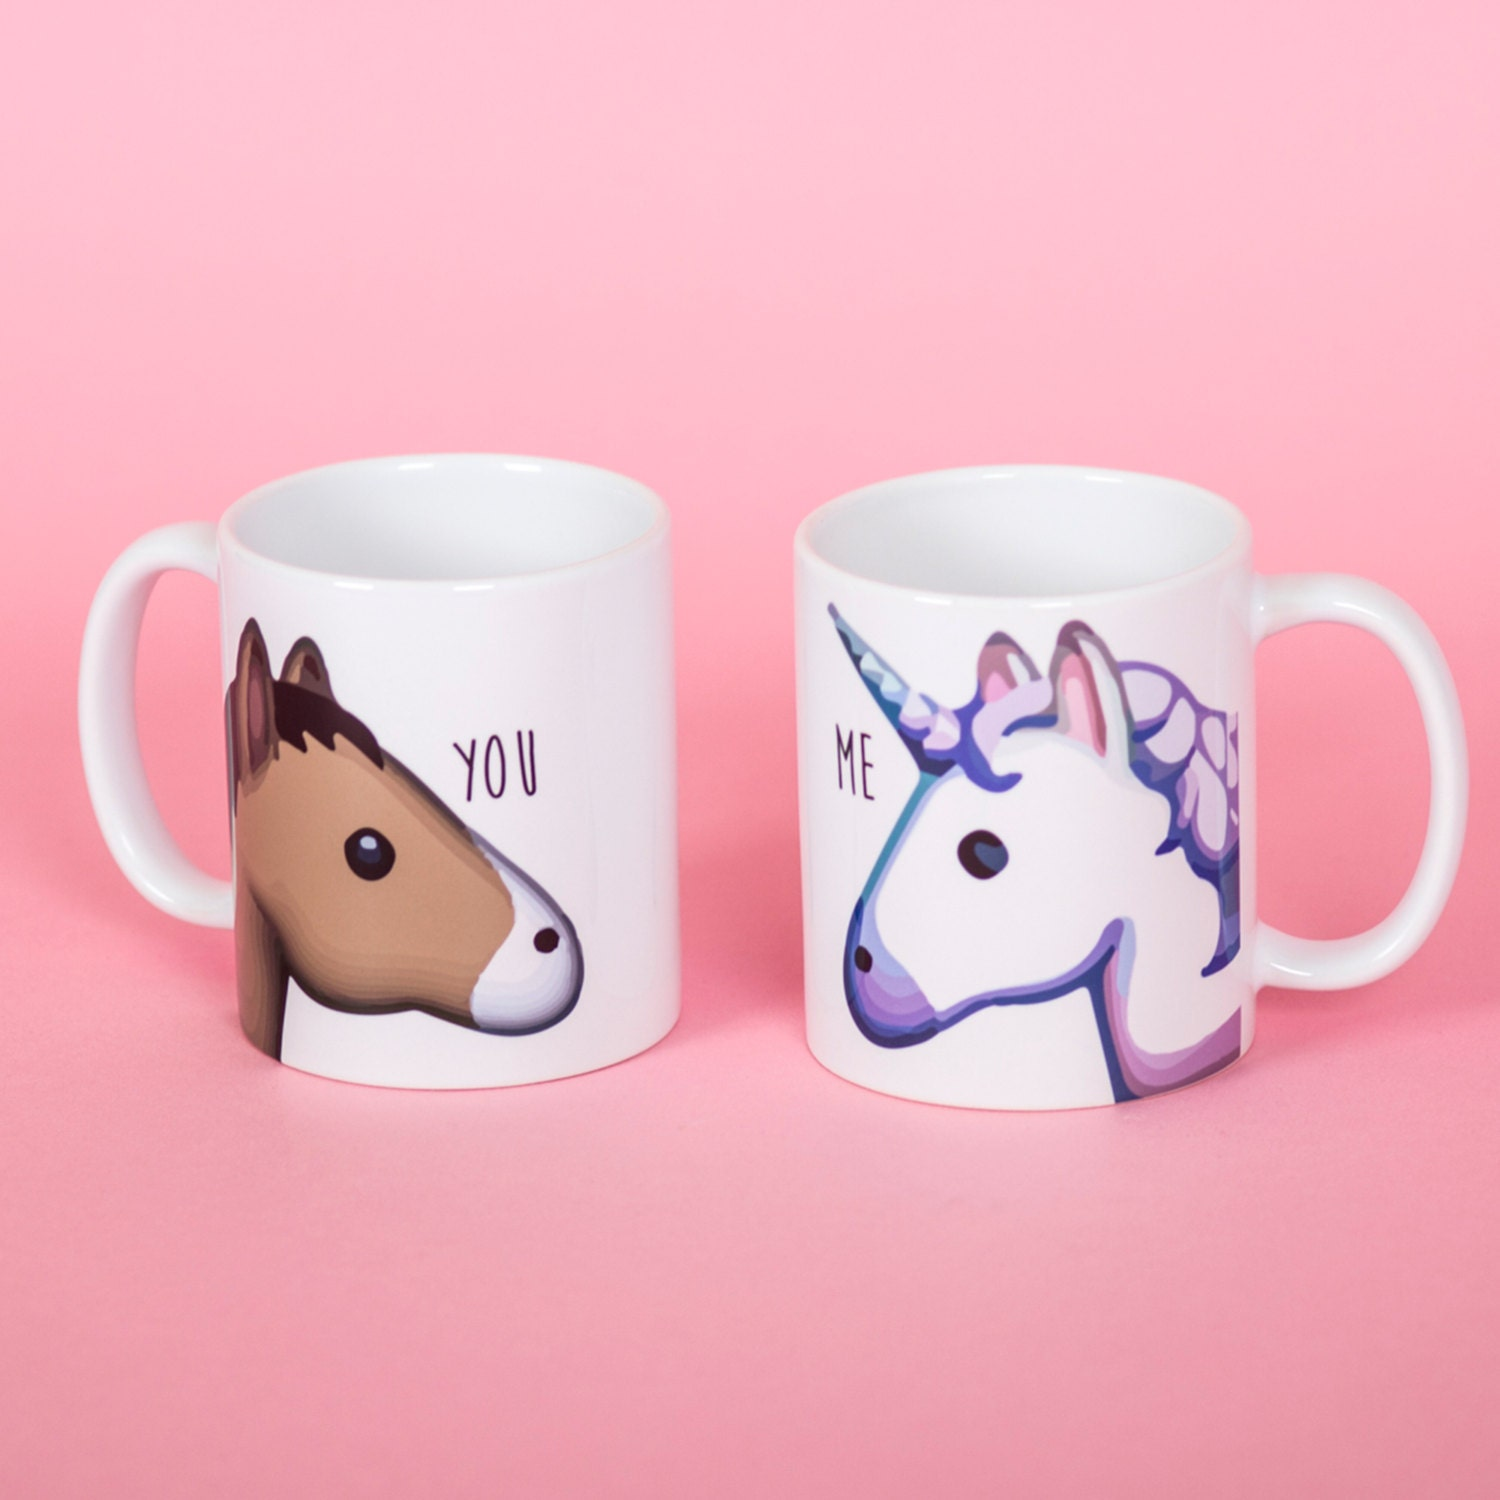 licorne et cheval emoji vous et moi mug tasse dr le rude. Black Bedroom Furniture Sets. Home Design Ideas